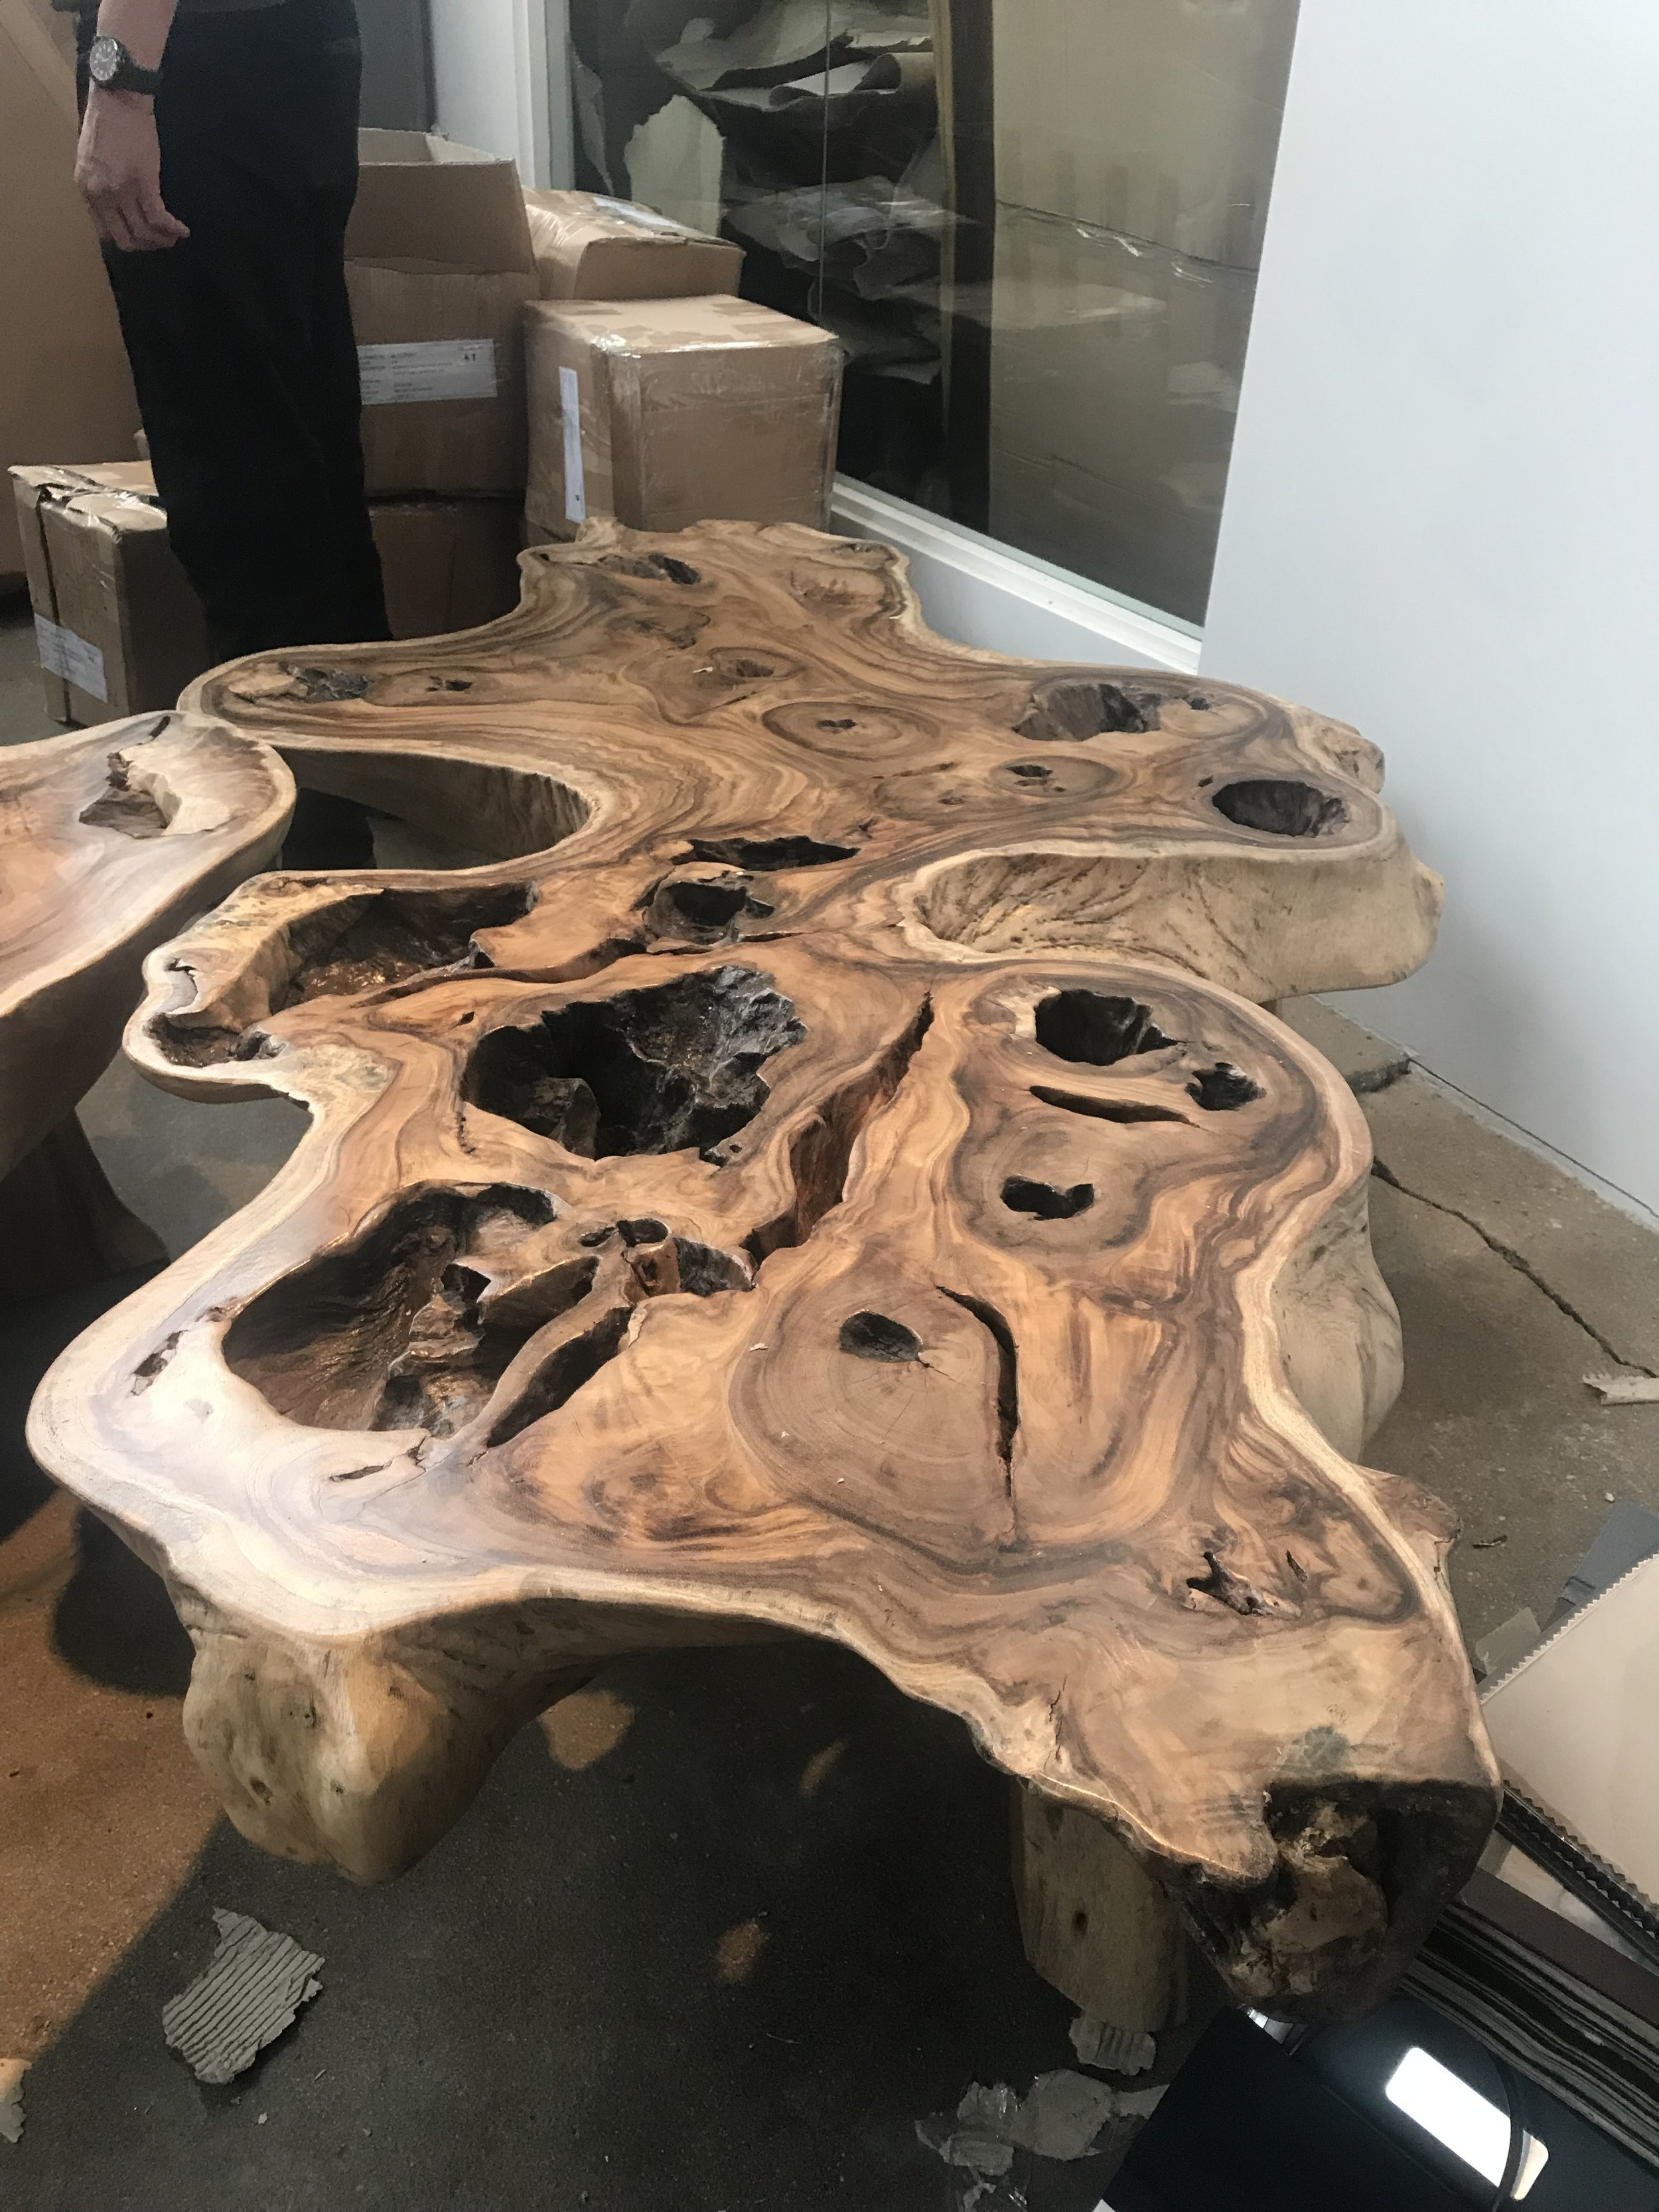 The most beautiful coffee table in all of existence. Majestic Single Slab coffee table.